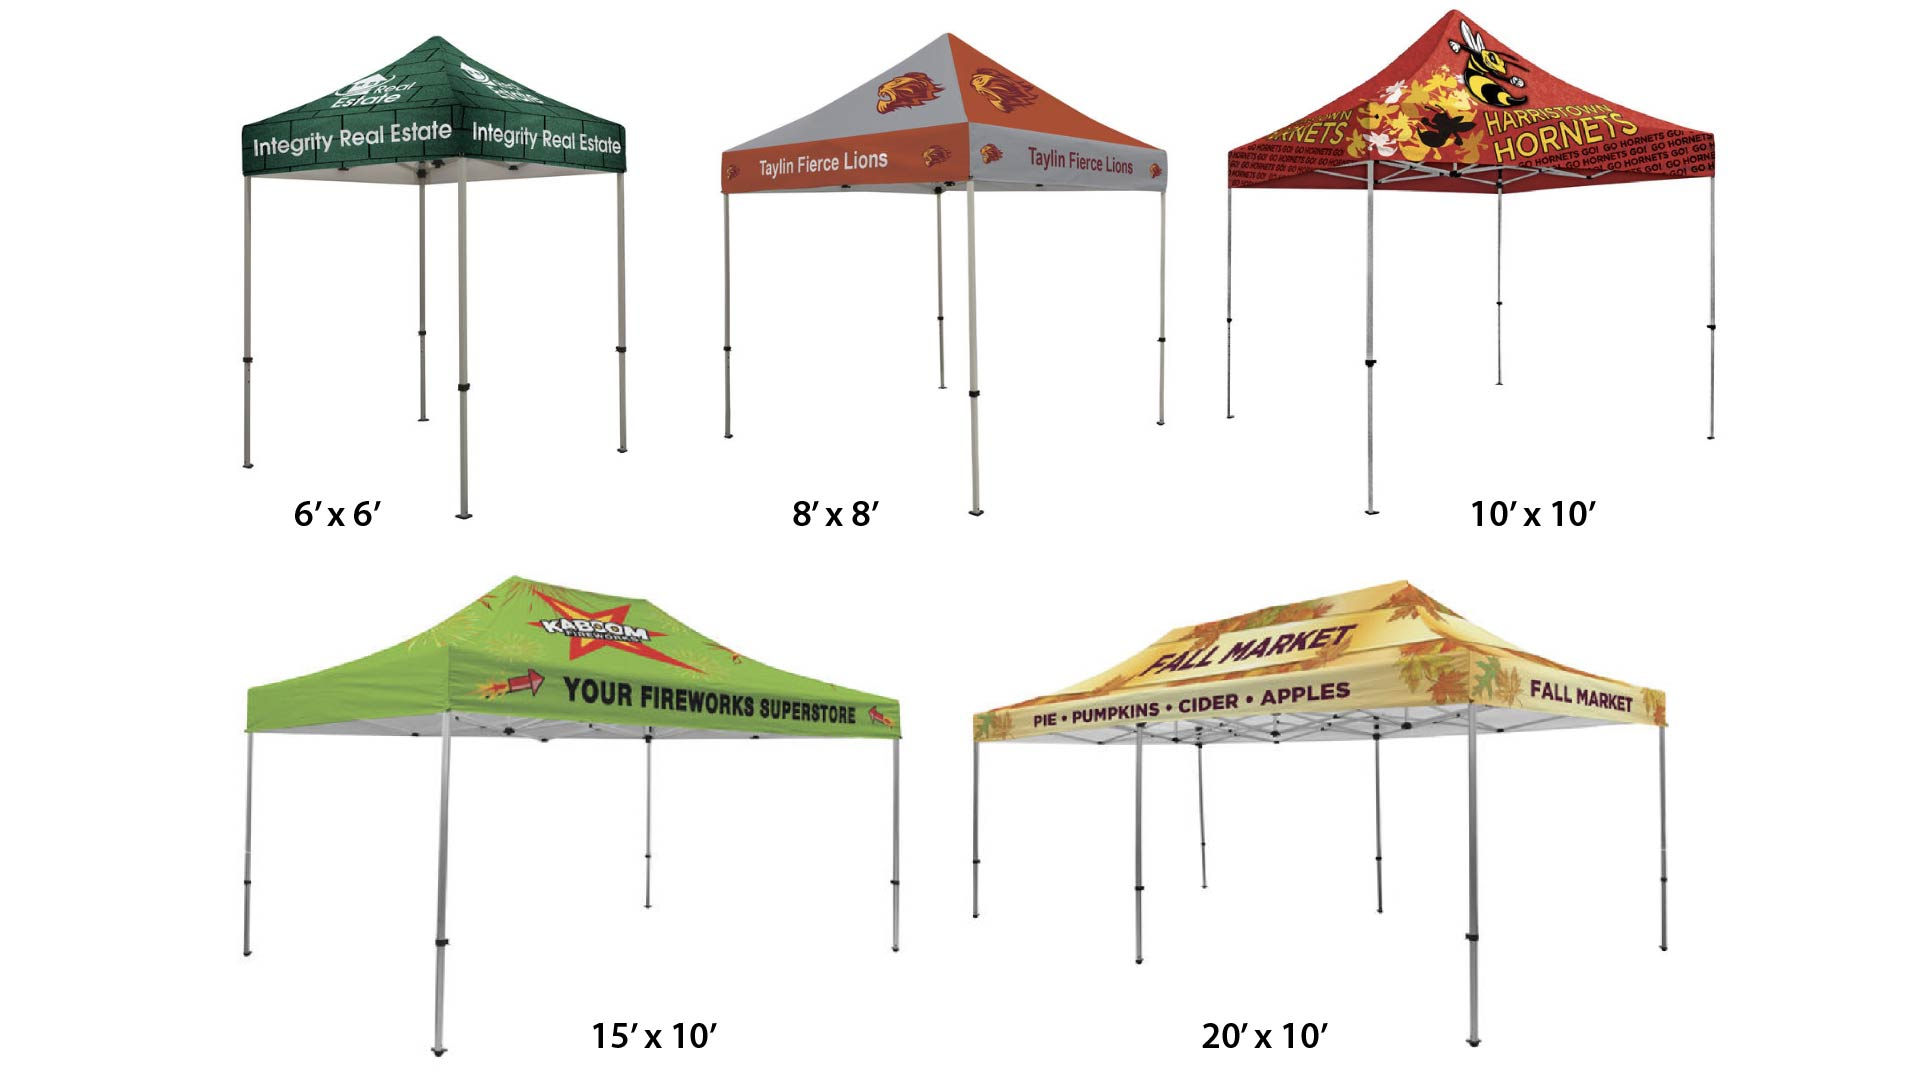 custom-printed-tent-sizes  sc 1 st  Expo Branders : tents sizes - memphite.com